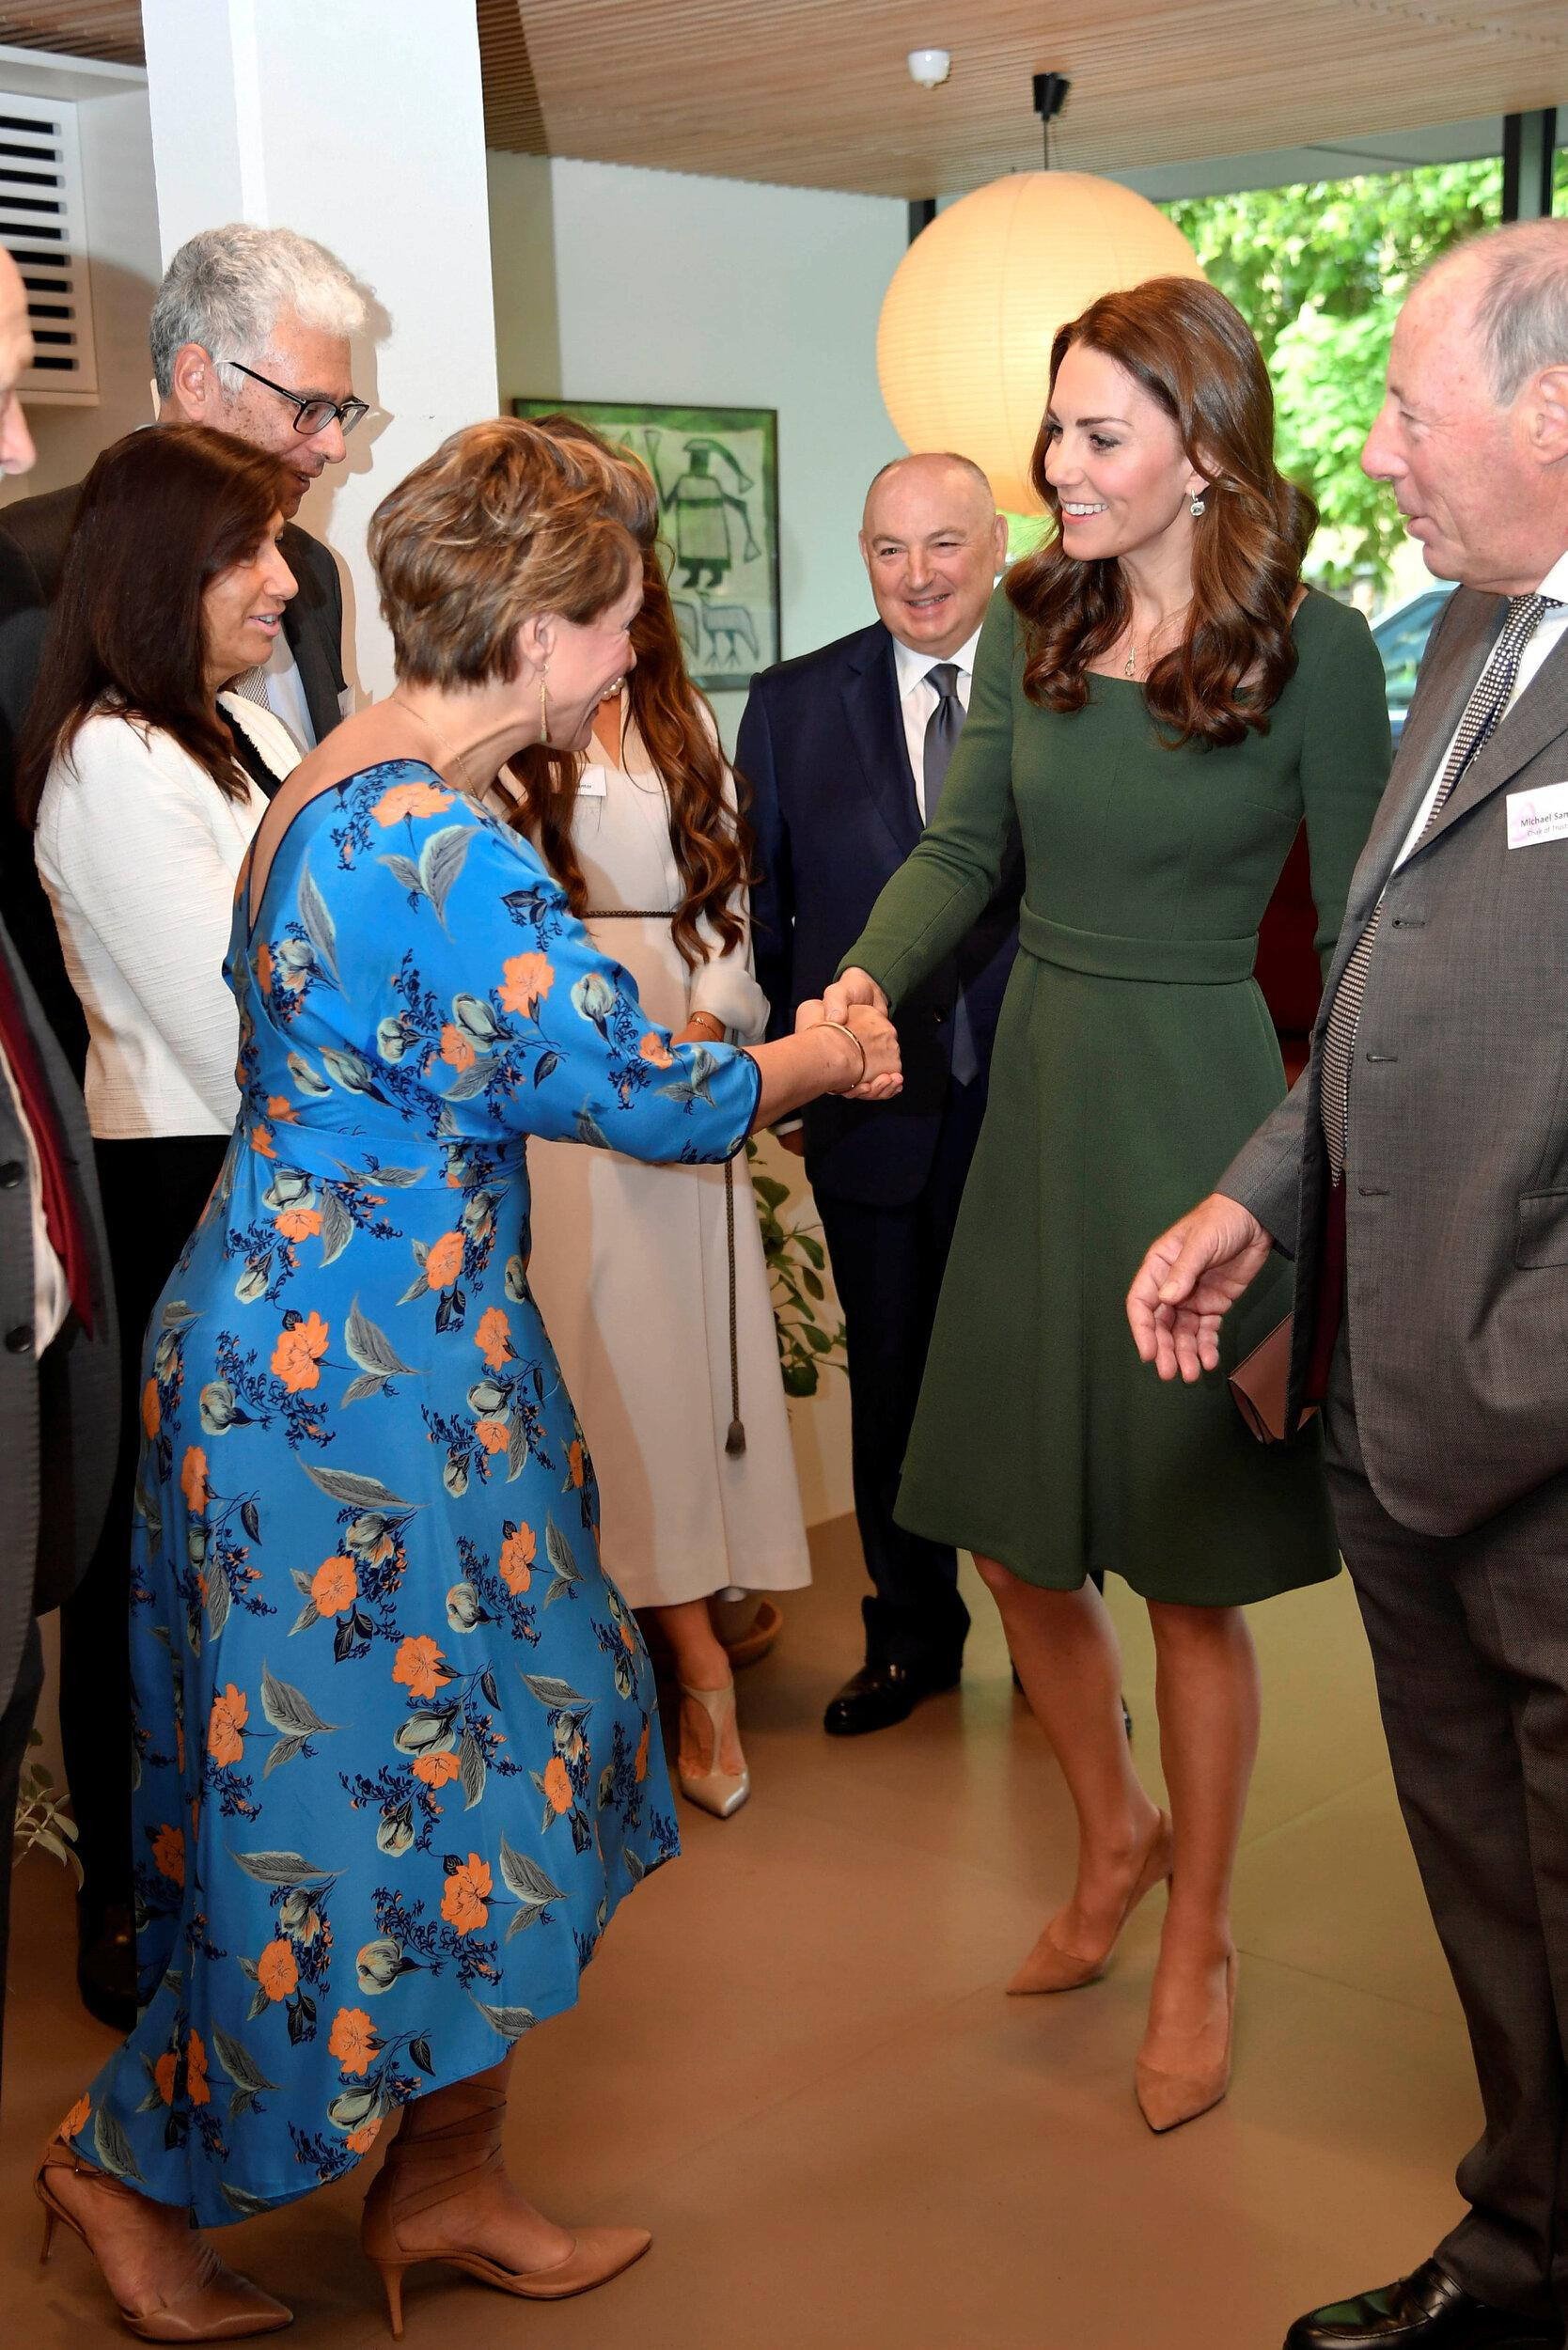 LONDON, ENGLAND - MAY 01:  Britain's Catherine, Duchess of Cambridge shakes hands with journalist Kate Silverton as she officially opens the new Centre of Excellence at the Anna Freud Centre on May 1, 2019 in London, England. The Duchess of Cambridge is Patron of the Anna Freud National Centre for Children and Families. (Photo by Toby Melville - WPA Pool/Getty Images)